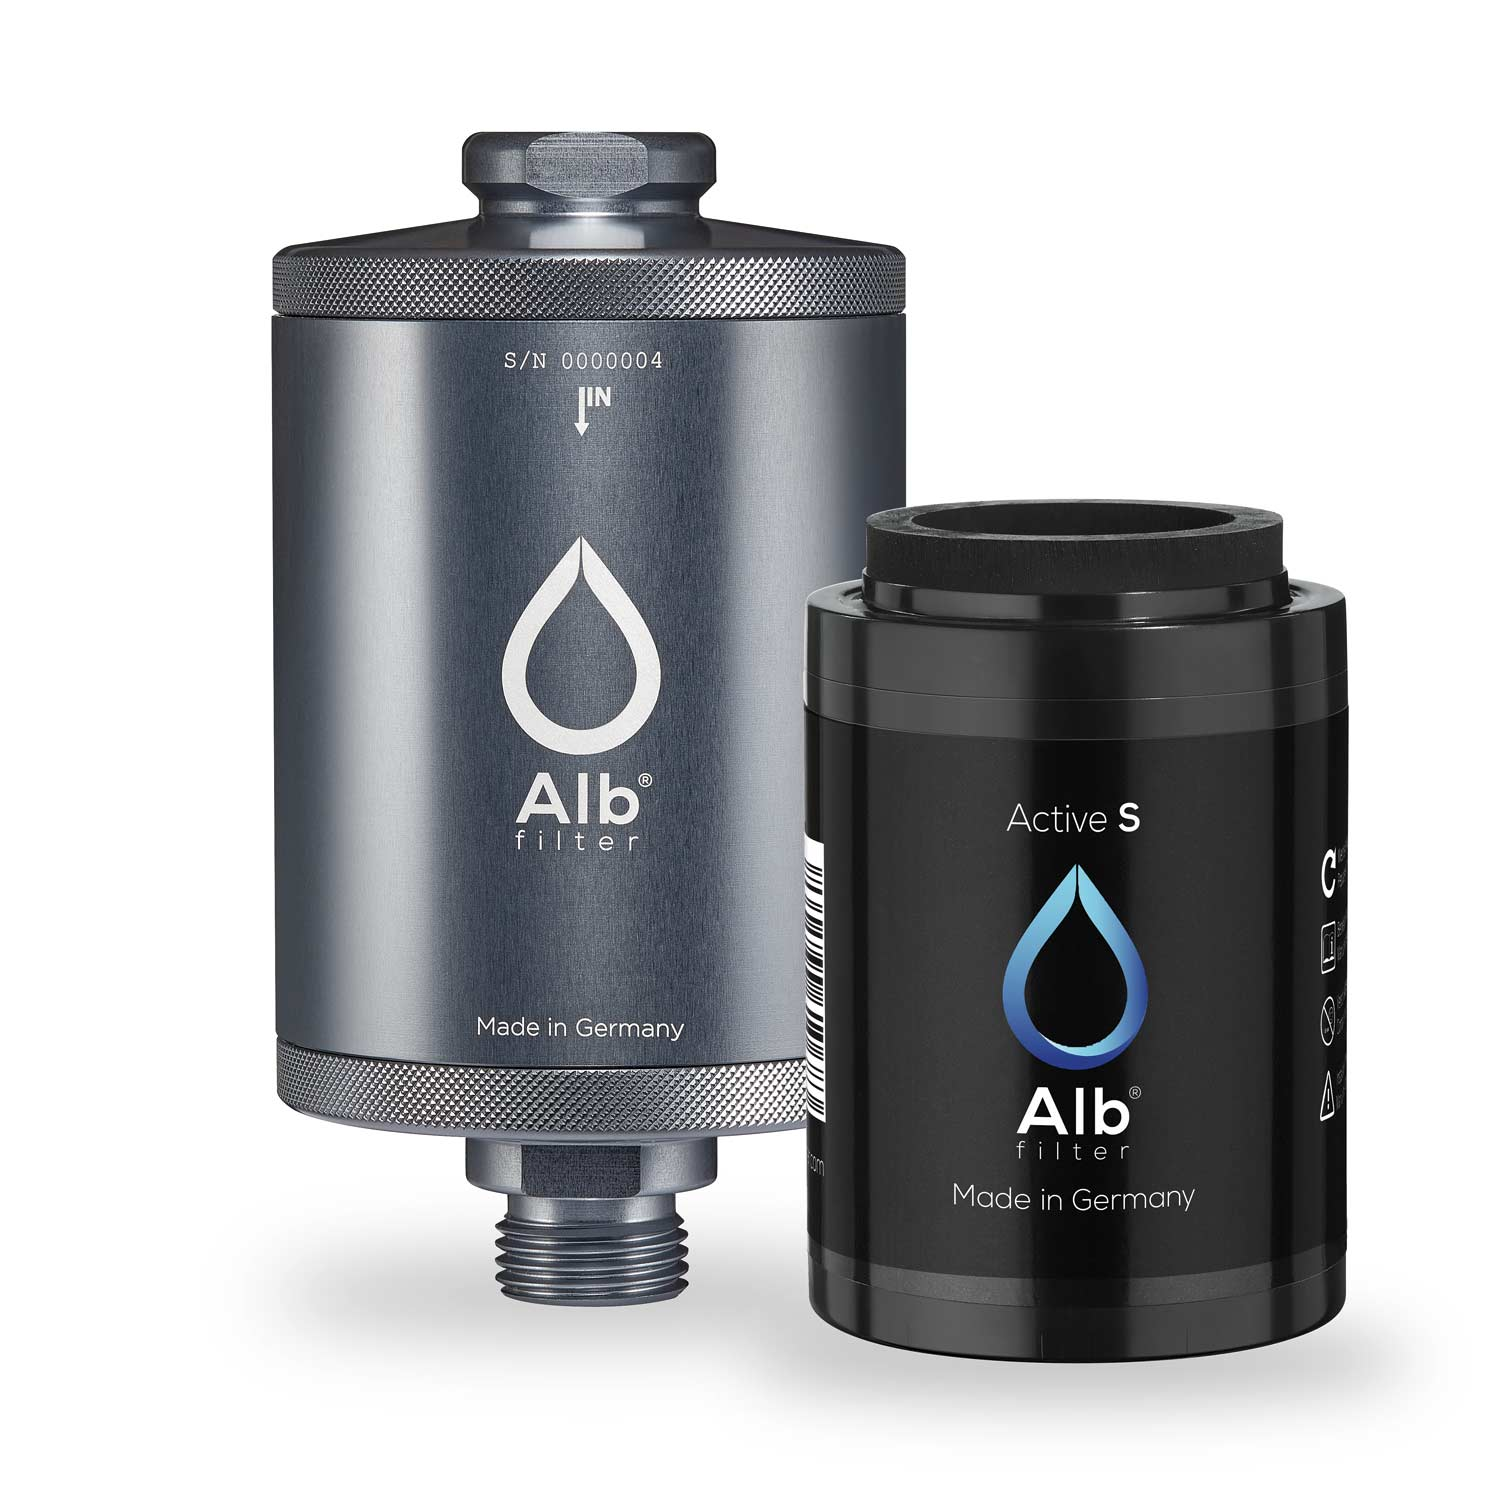 Alb water filter for undertable. Metal filter housing in titanium colour with Active-S filter cartridge